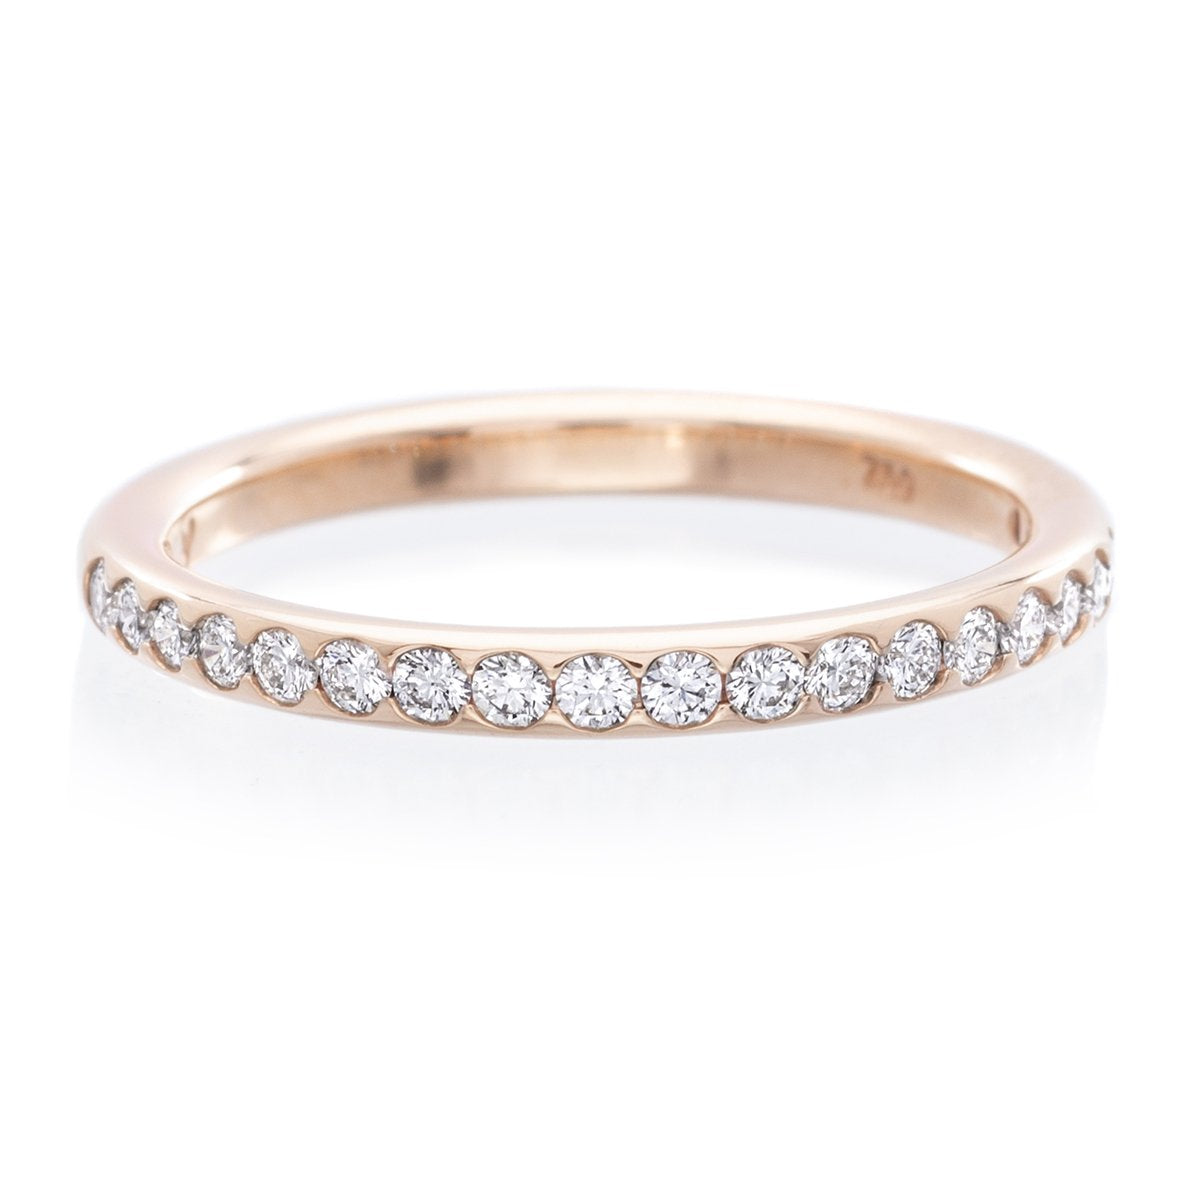 18K Rose Gold Shared Prong Diamond Wedding Band